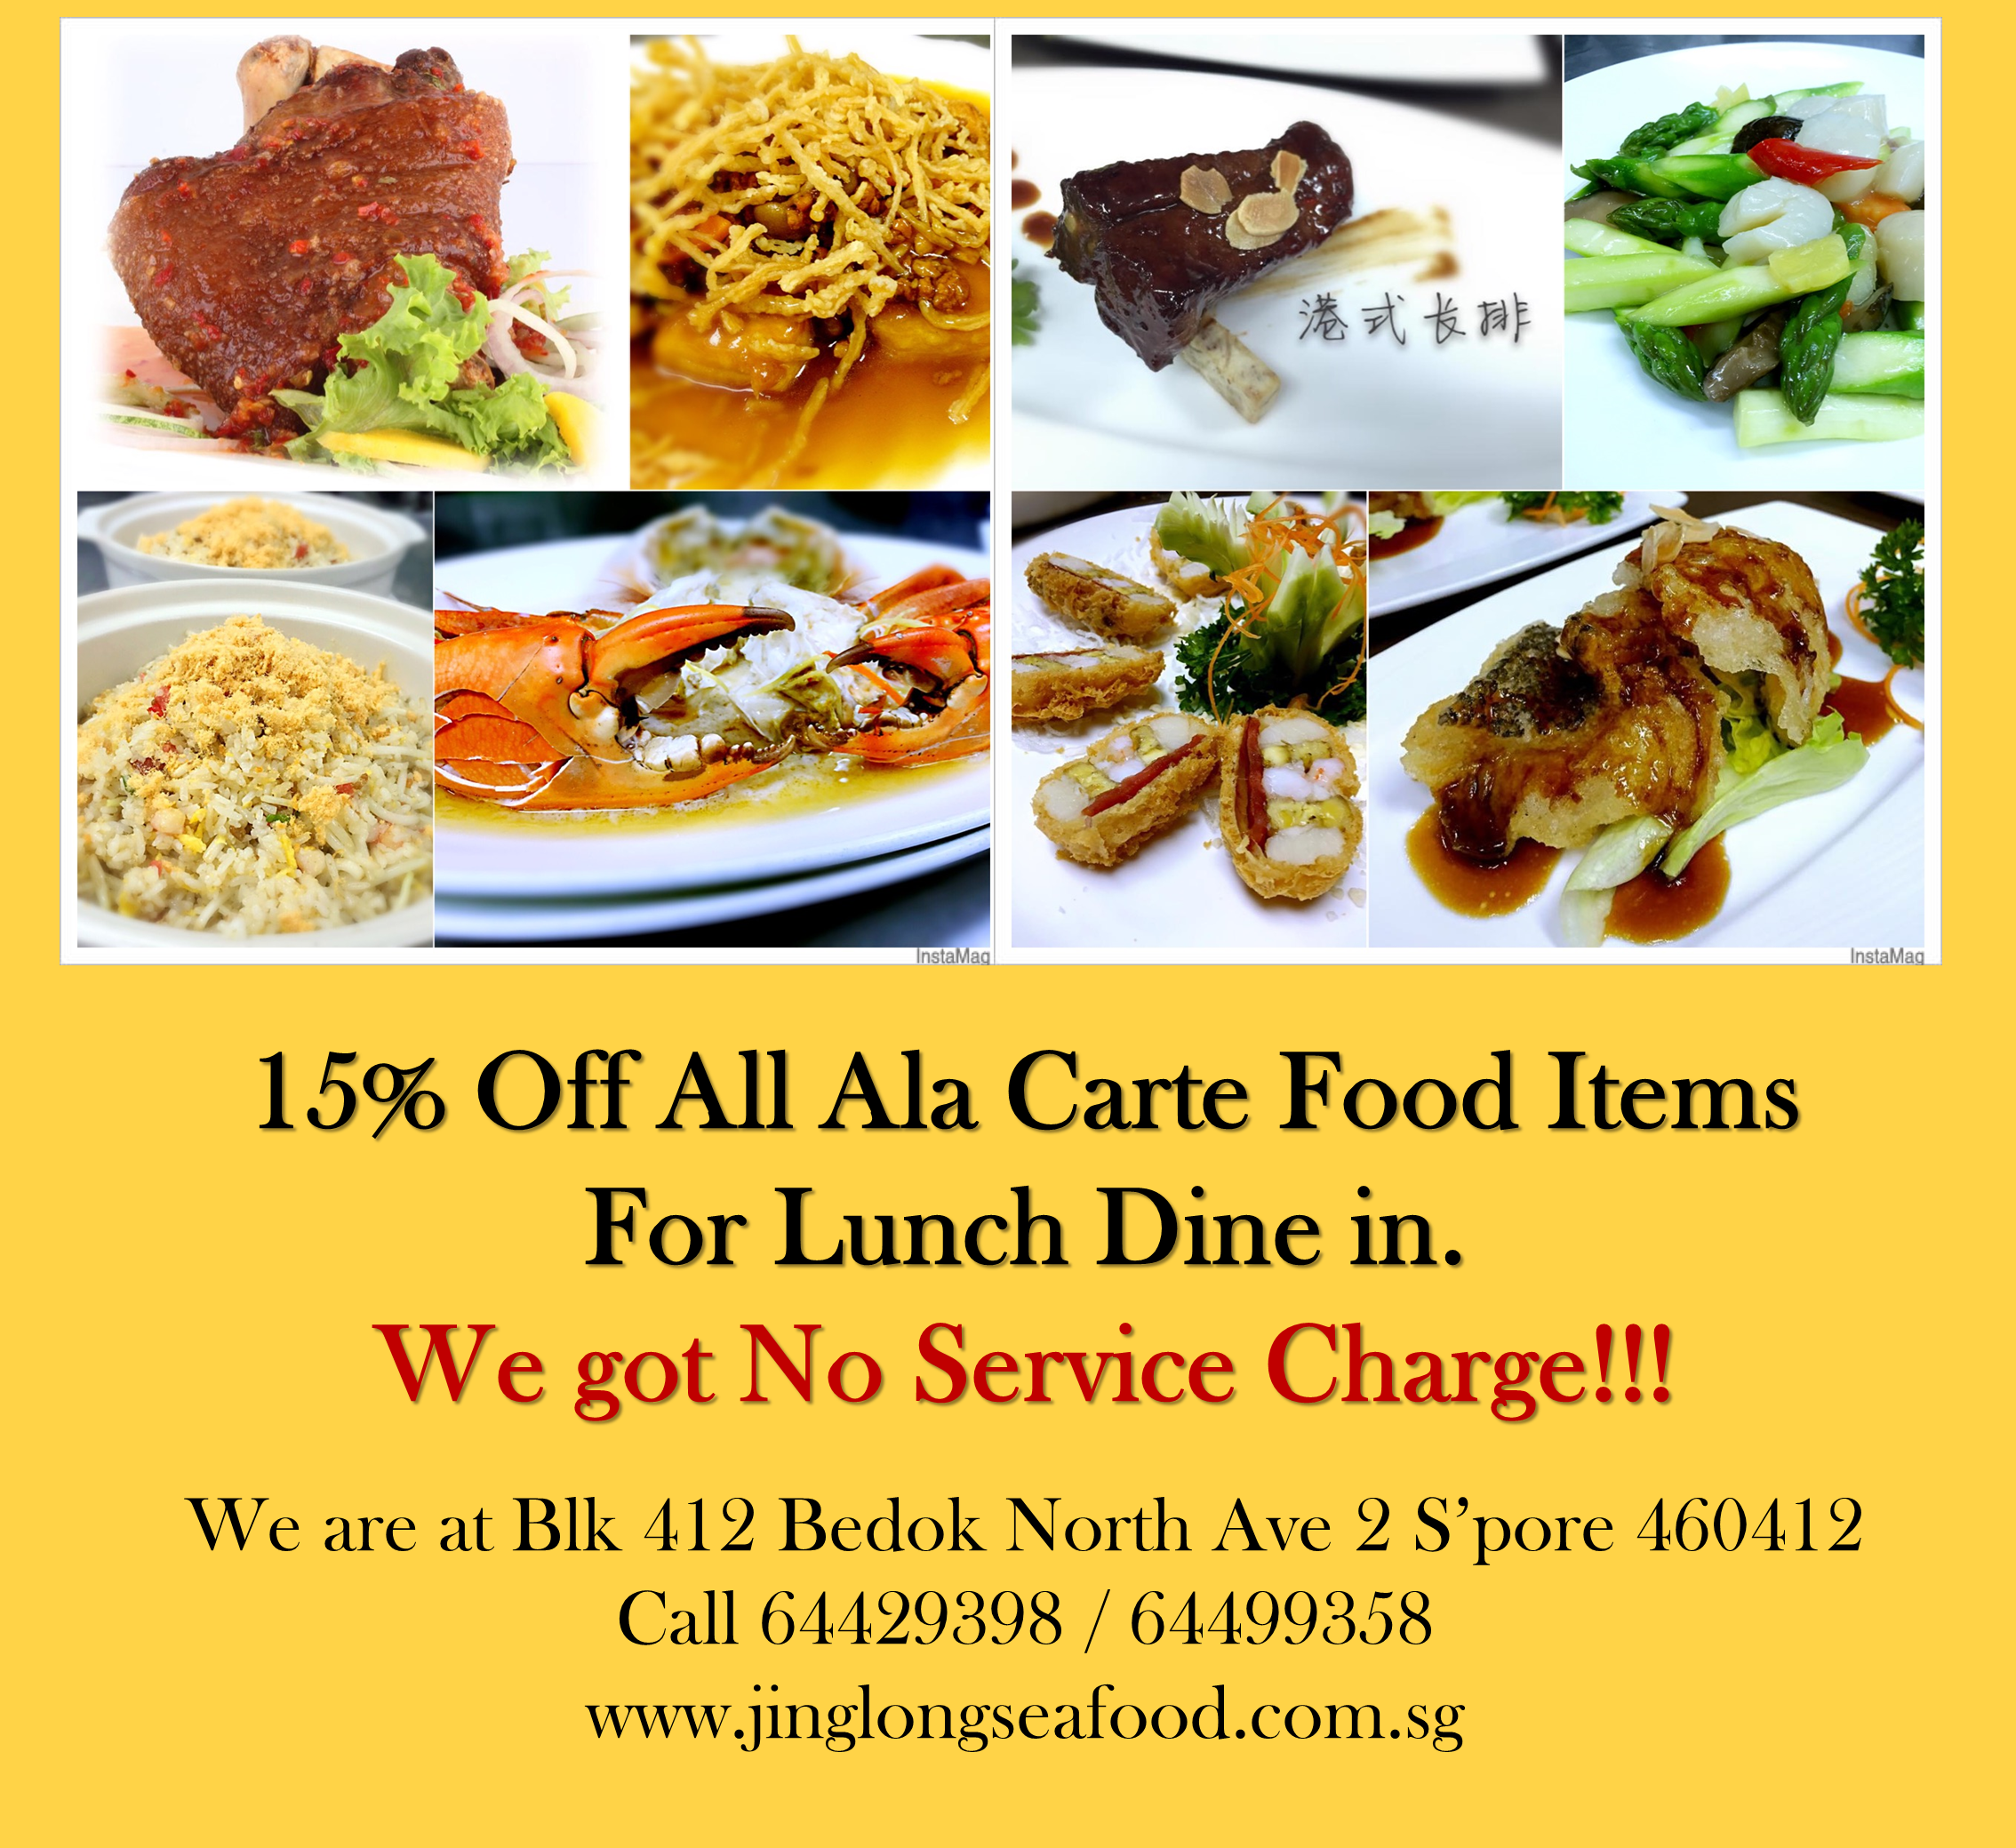 Www Jinglongseafood Com Sg No Service Charge With 15 Off Ala Carte Food Items For Lunch Dine In Blk 412 Bedok North Ave 2 S Pore 460412 Food Lunch Food Items